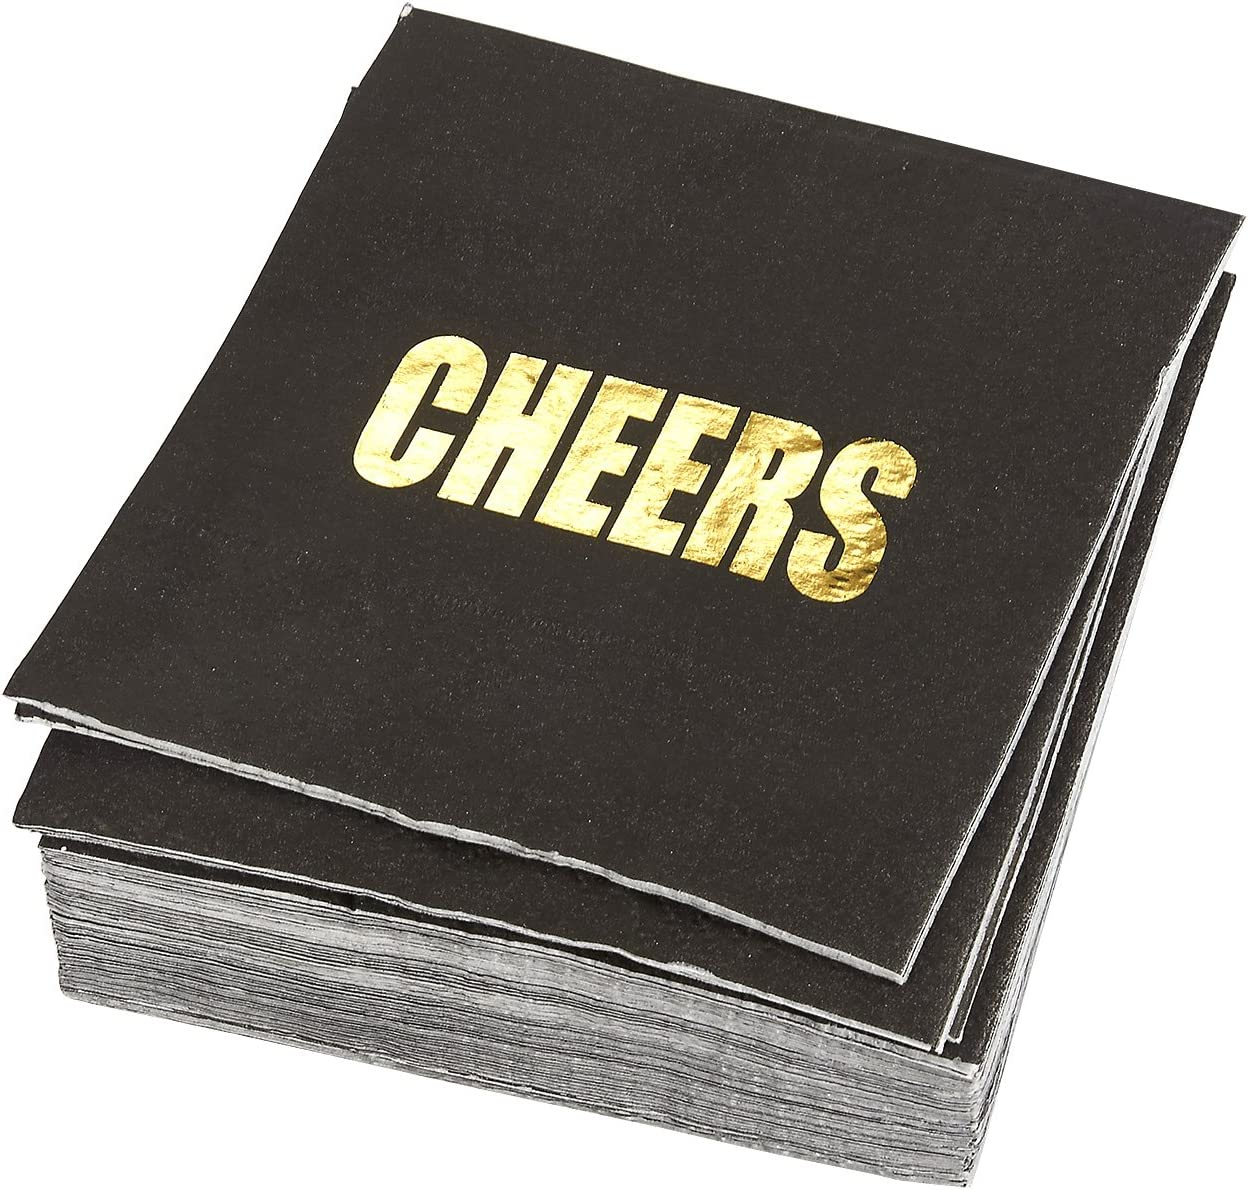 Cheers Party Supplies, Black Paper Napkins (5 x 5 In, Gold Foil, 50 Pack)